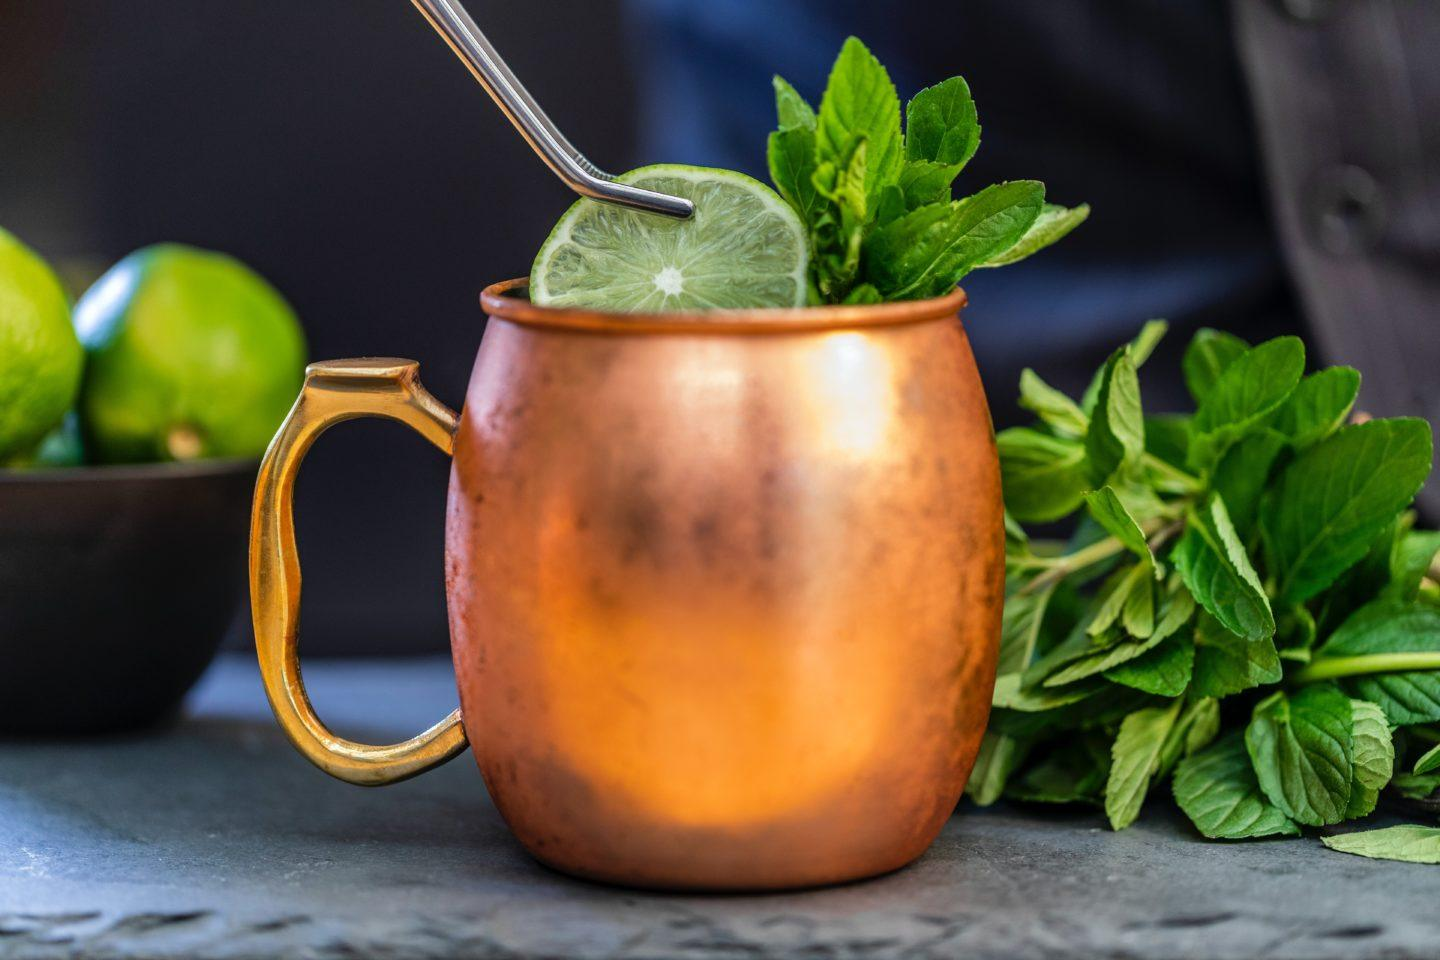 Moscow Mule ingredients, by lifestyle blogger What The Fab